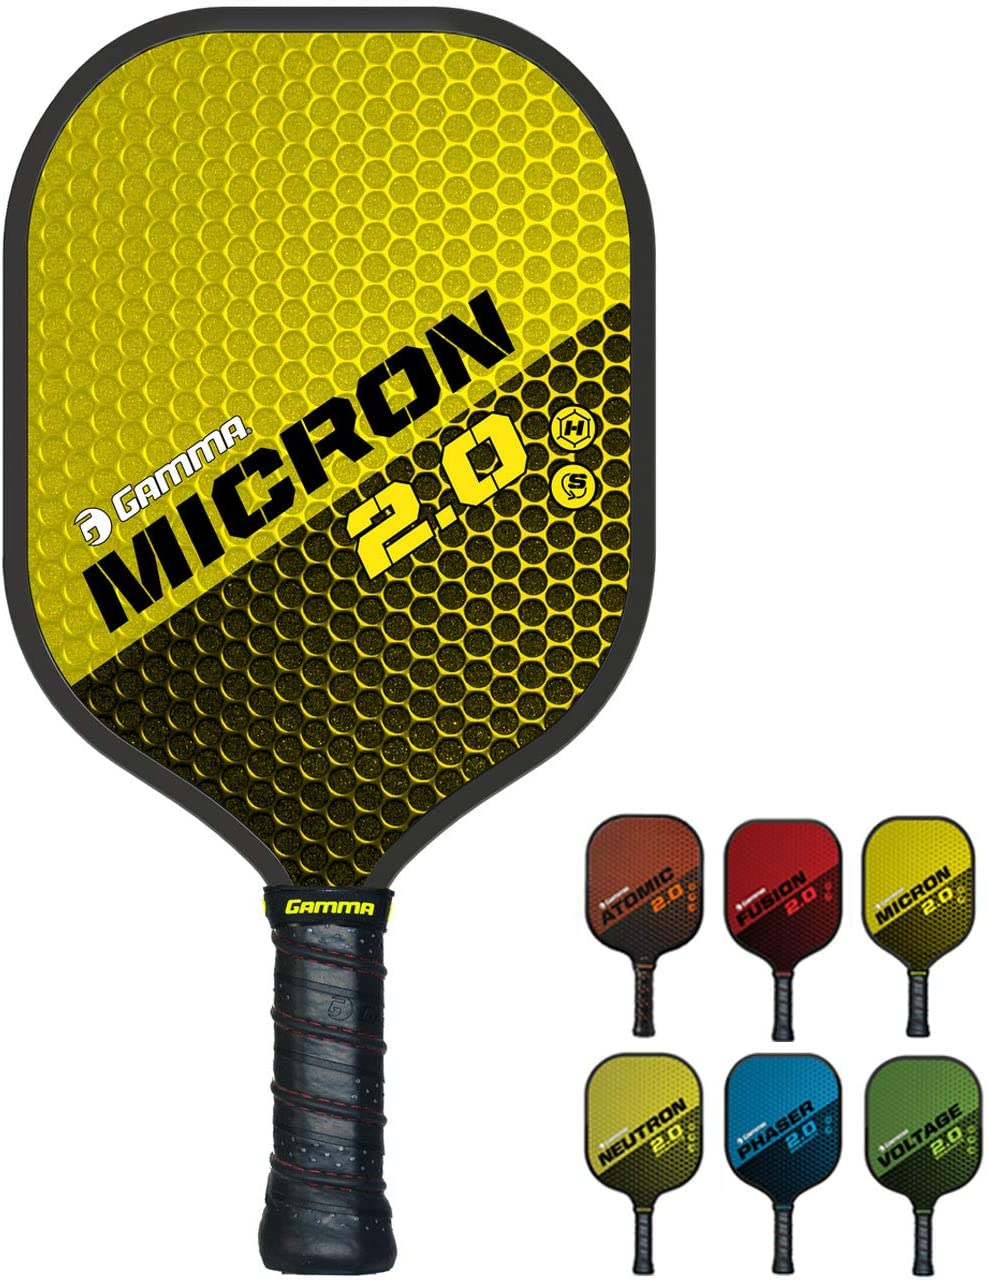 Gamma Micron 2.0 Pickleball Paddles